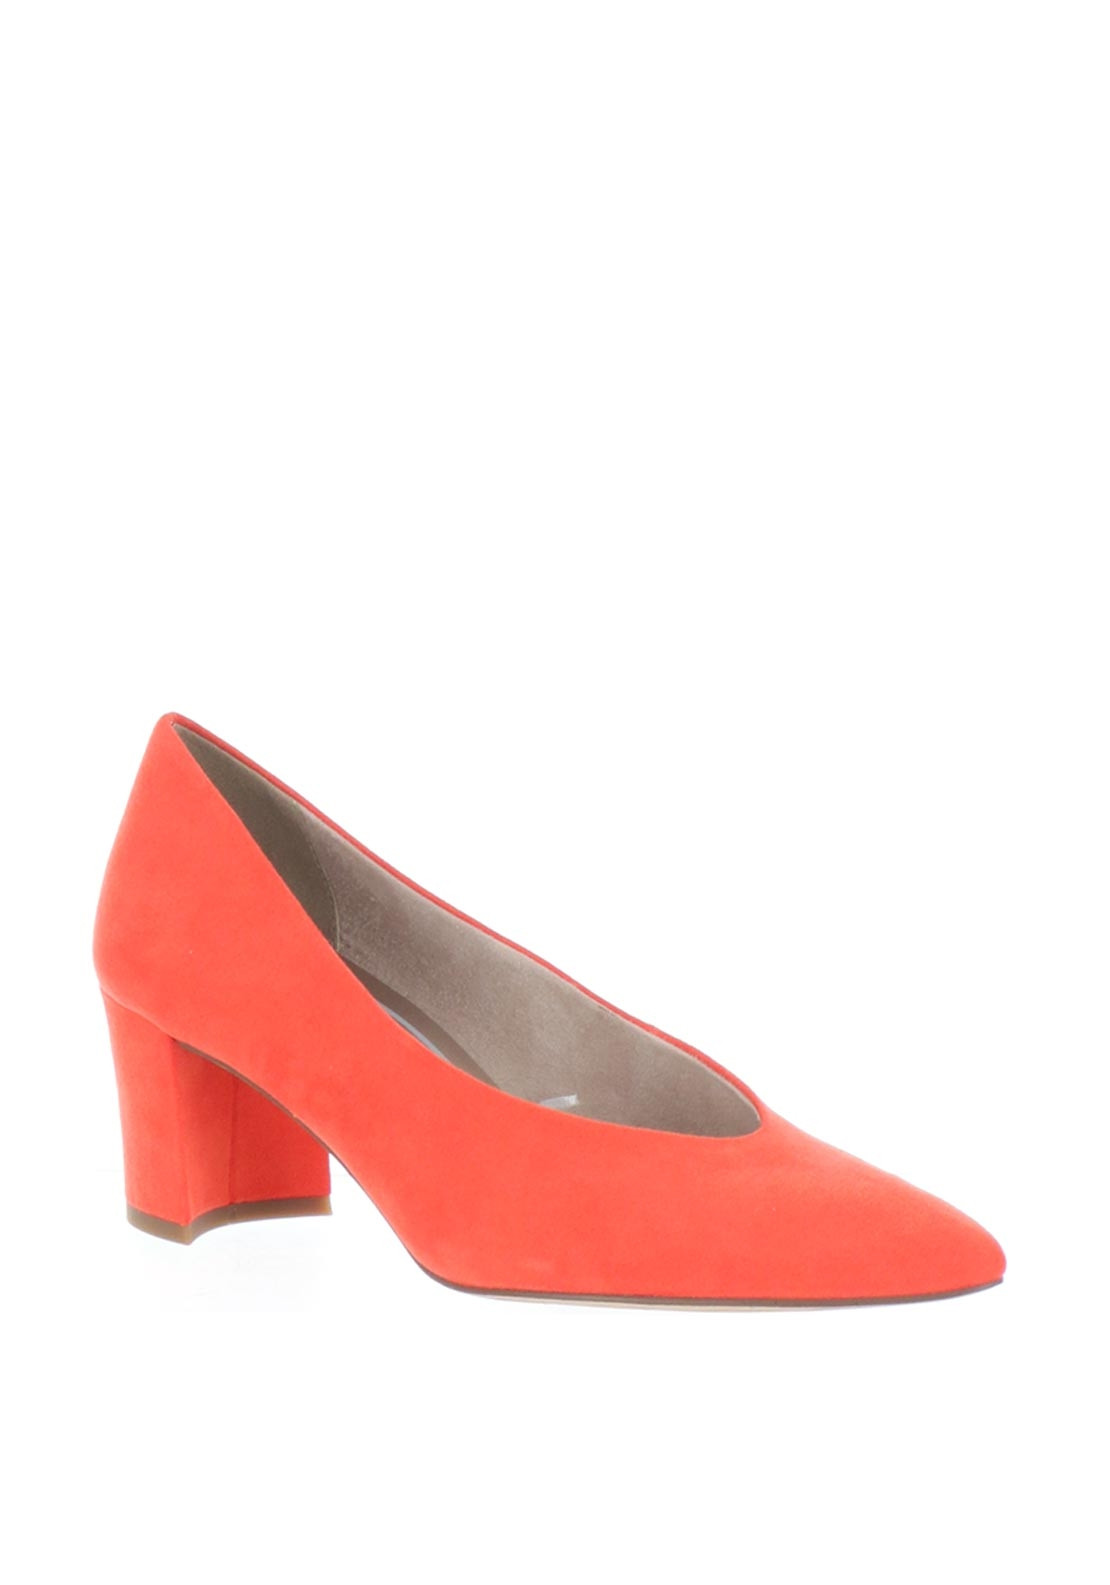 7c70d001036 Marco Tozzi Faux Suede Block Heel Shoes